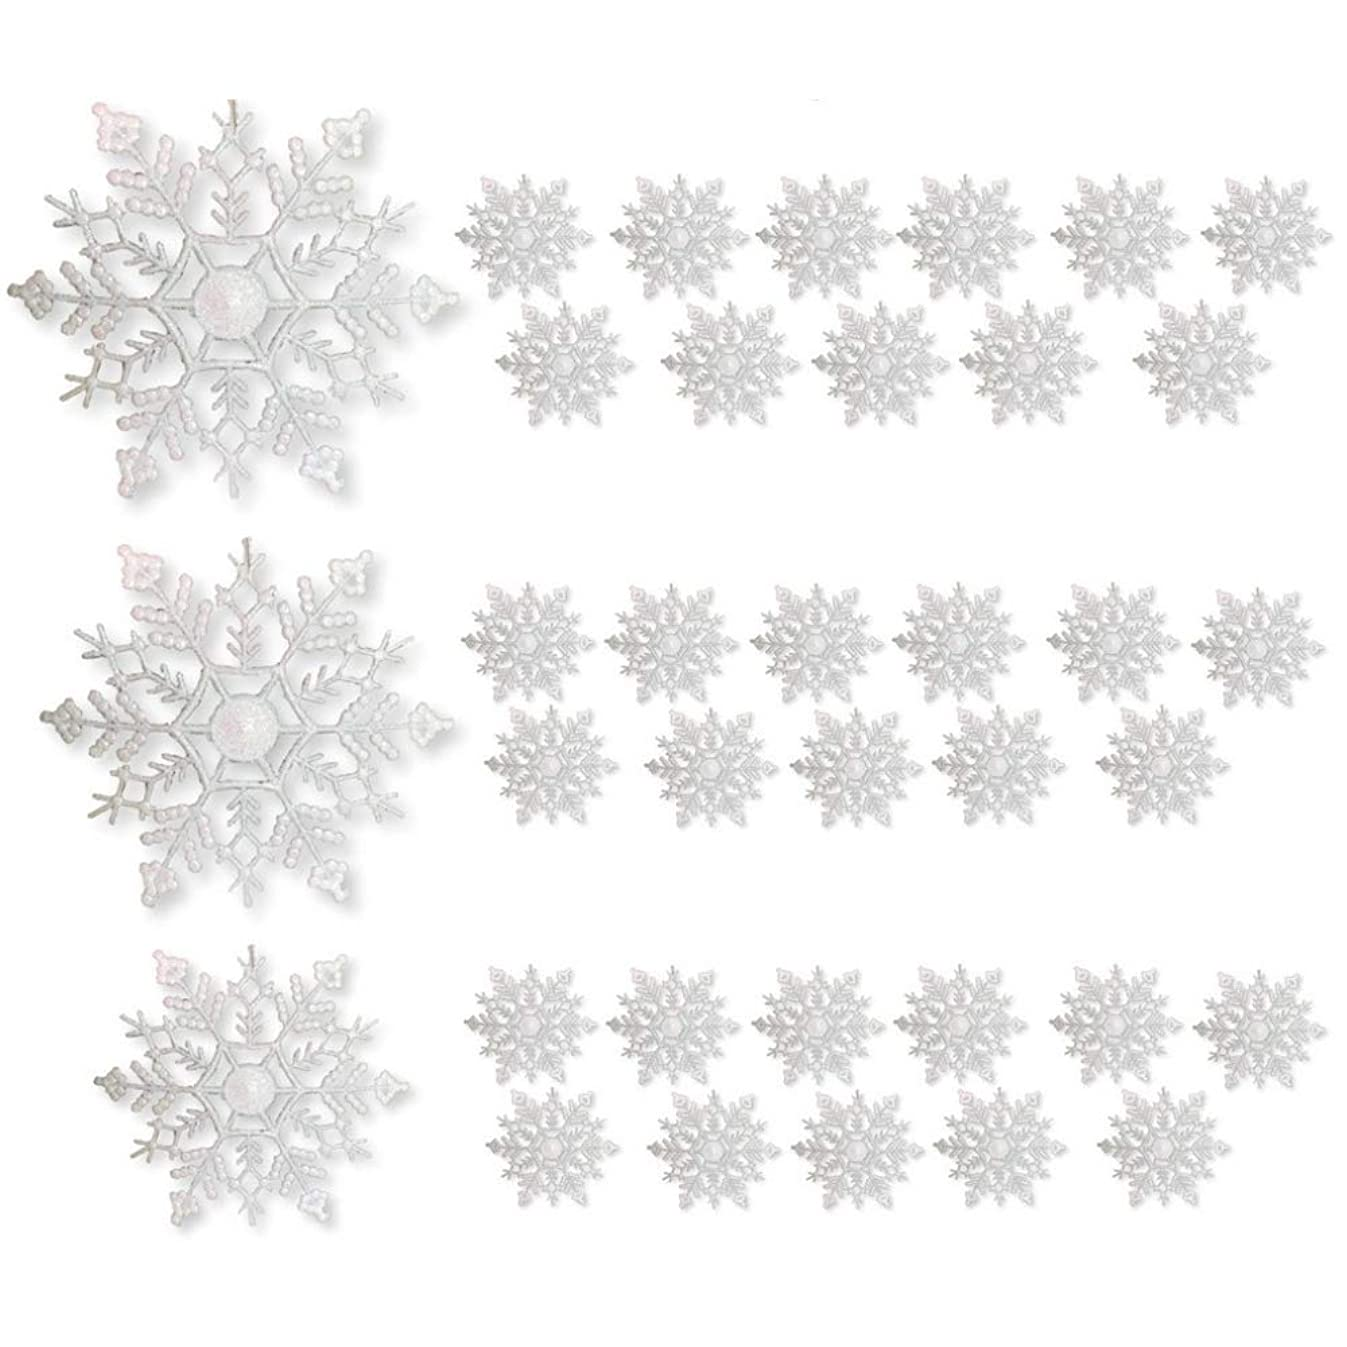 BANBERRY DESIGNS White Snowflake Christmas Ornaments - Pack of 36 White Glittered Snowflake Ornaments - Assorted Sizes - Iridescent White Christmas Snow Flakes